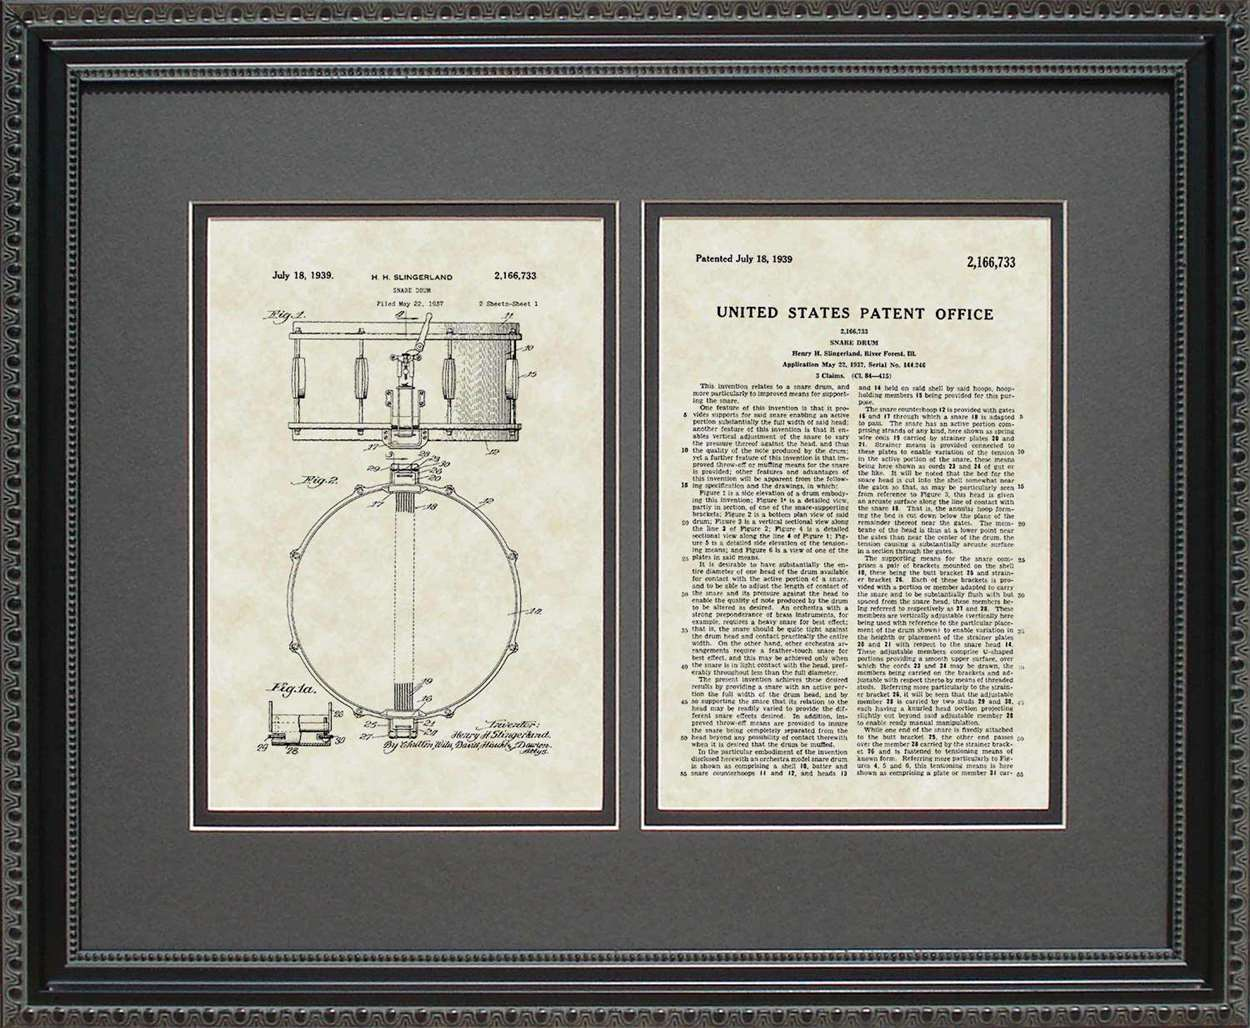 Snare Drum Patent, Art & Copy, Singerland, 1939, 16x20